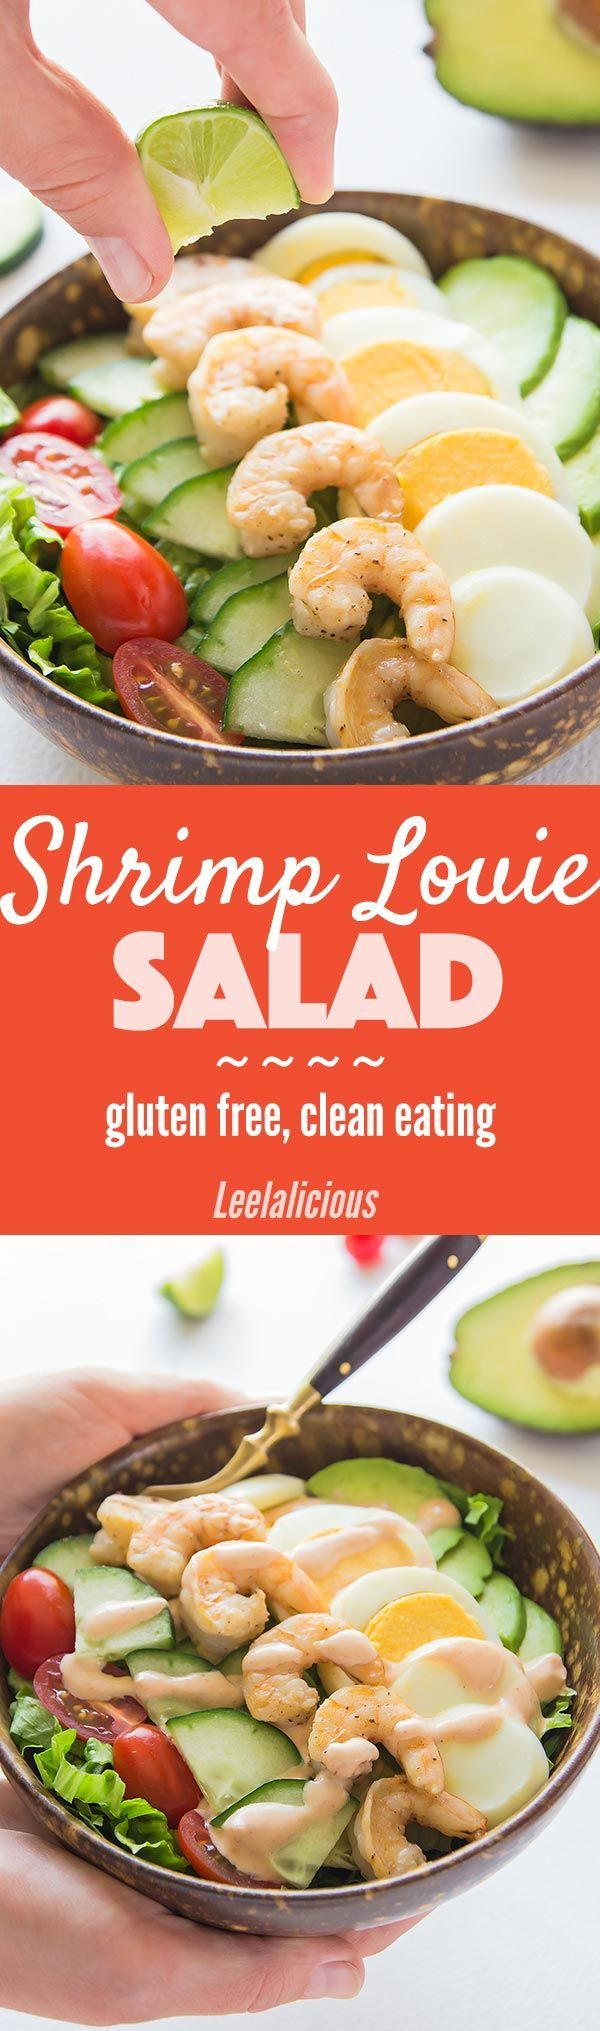 This vibrant Shrimp Louie Salad consists of lettuce with avocado, egg, tomato, cucumber, and seared shrimp topped with the signature Shrimp Louie dressing